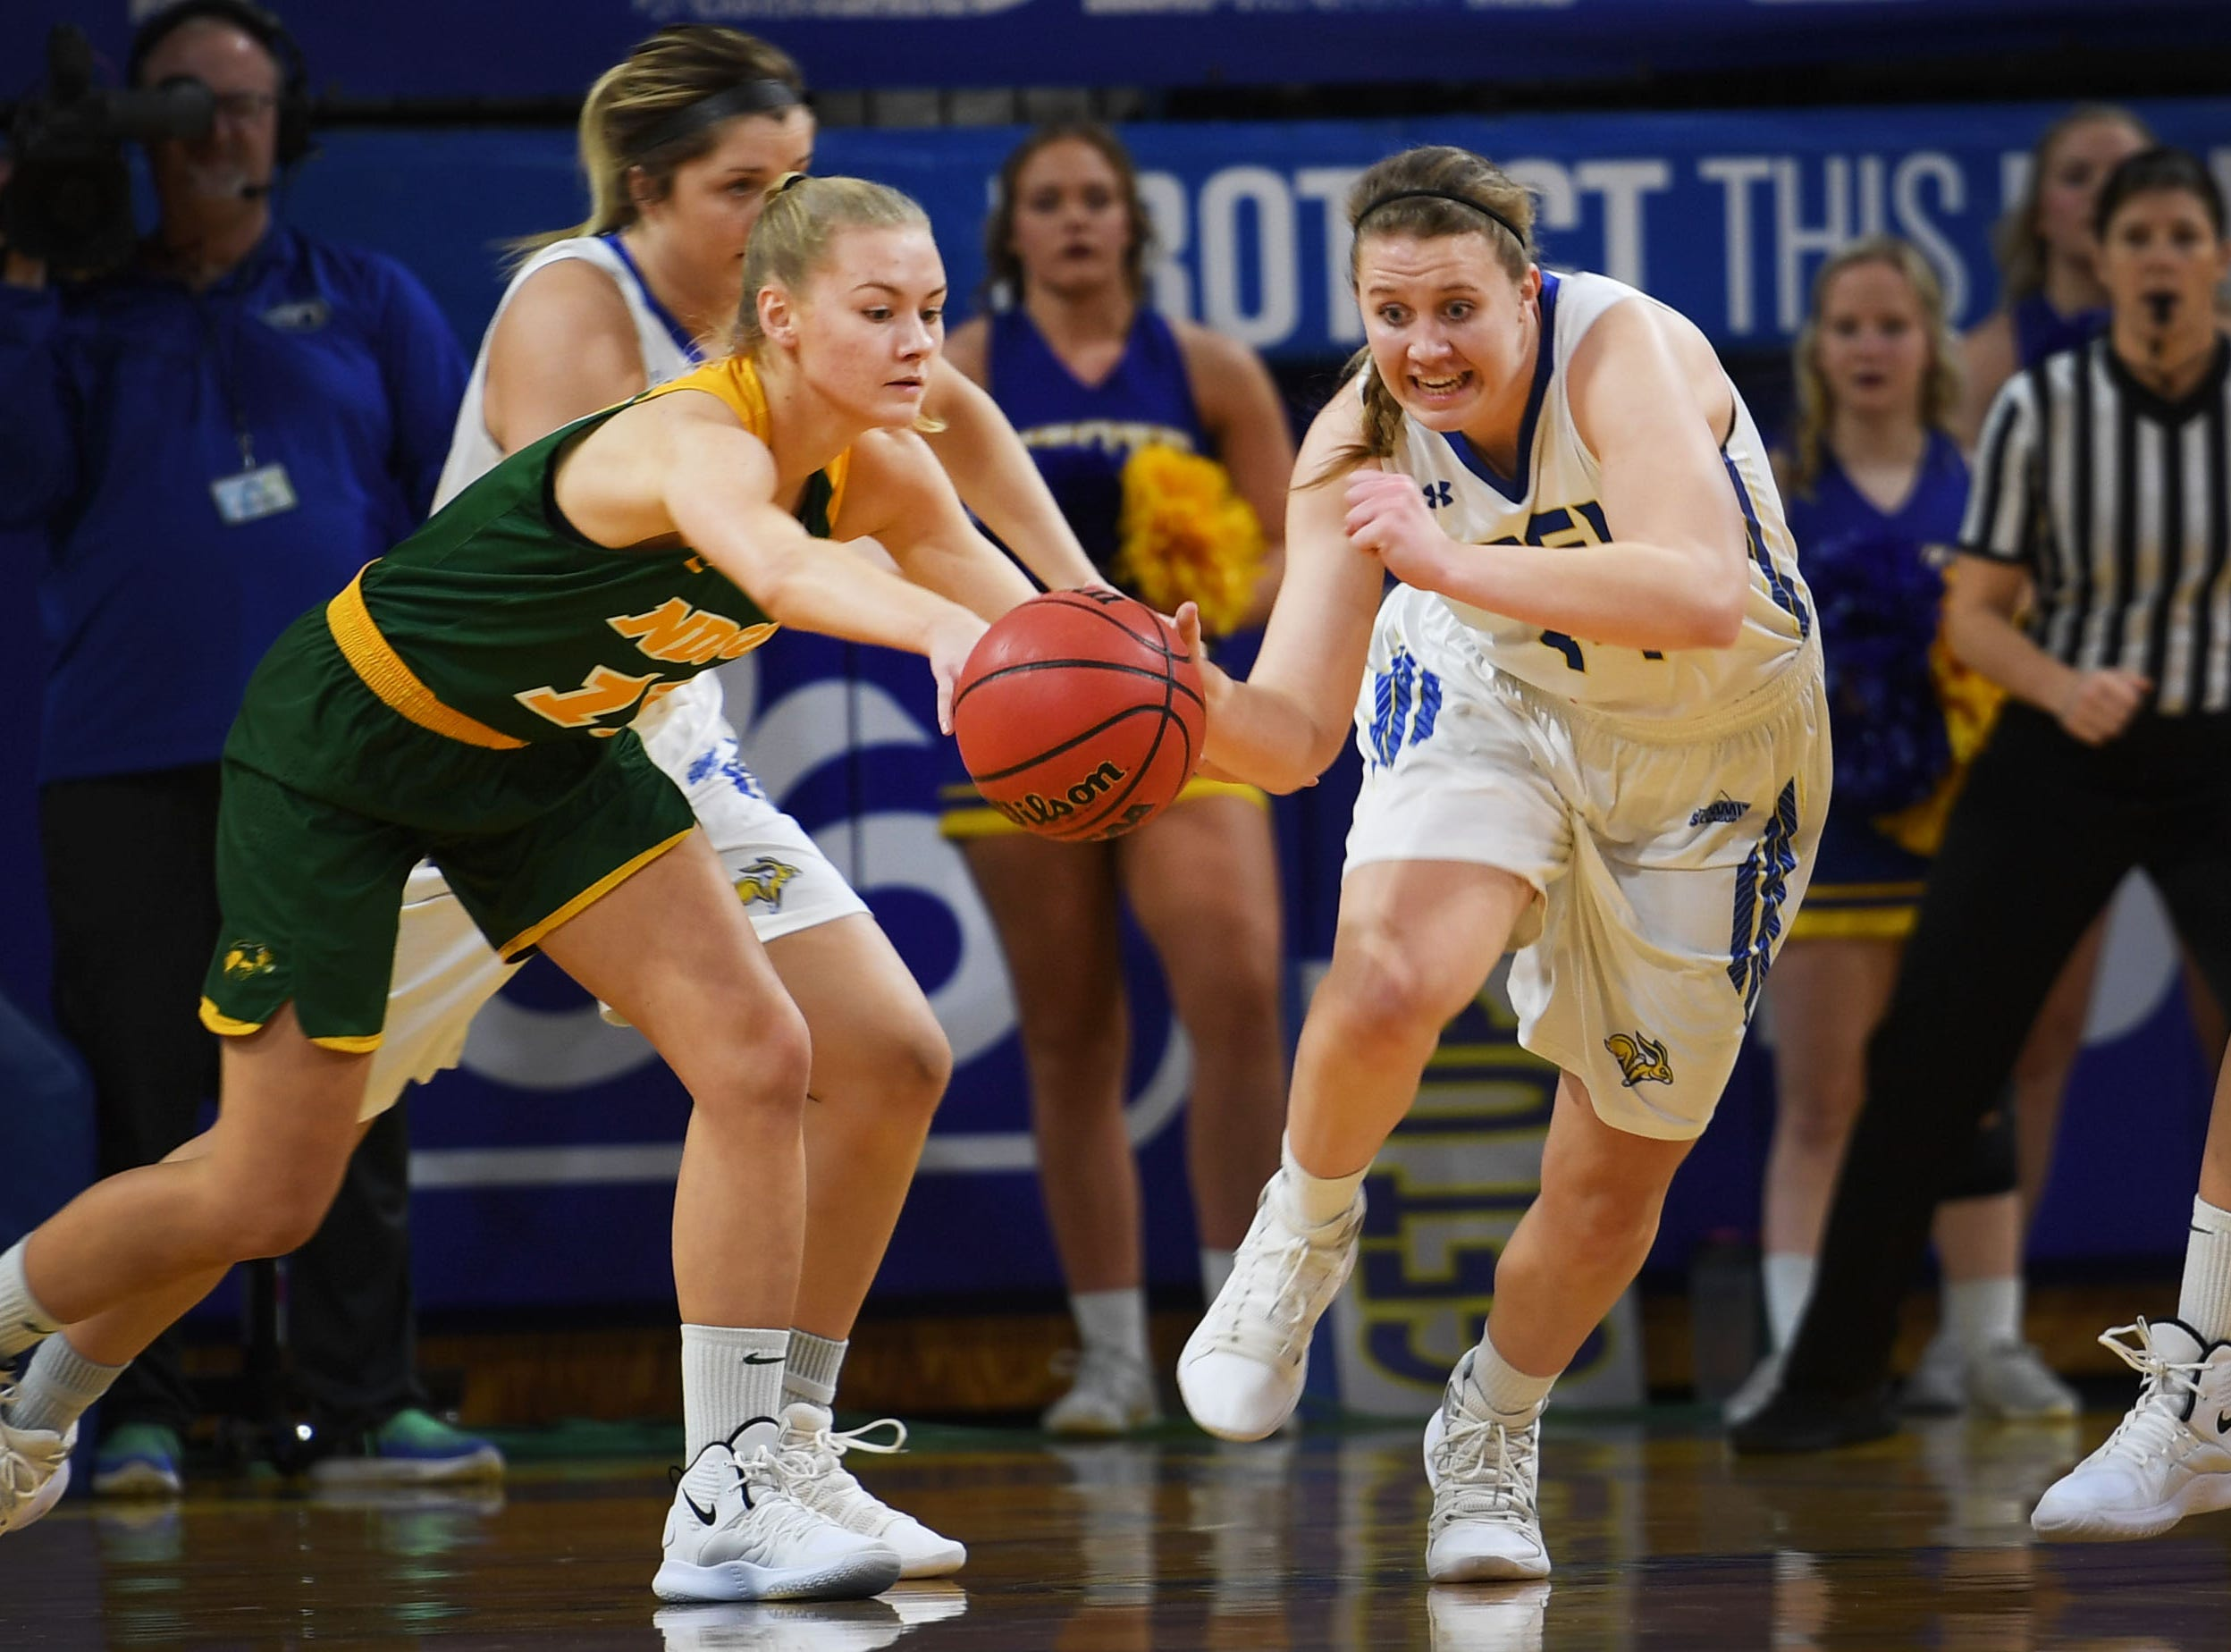 NDSU's Cirkeline Rimdal goes against SDSU's Myah Selland during the game Wednesday, Jan. 23, at Frost Arena in Brookings.